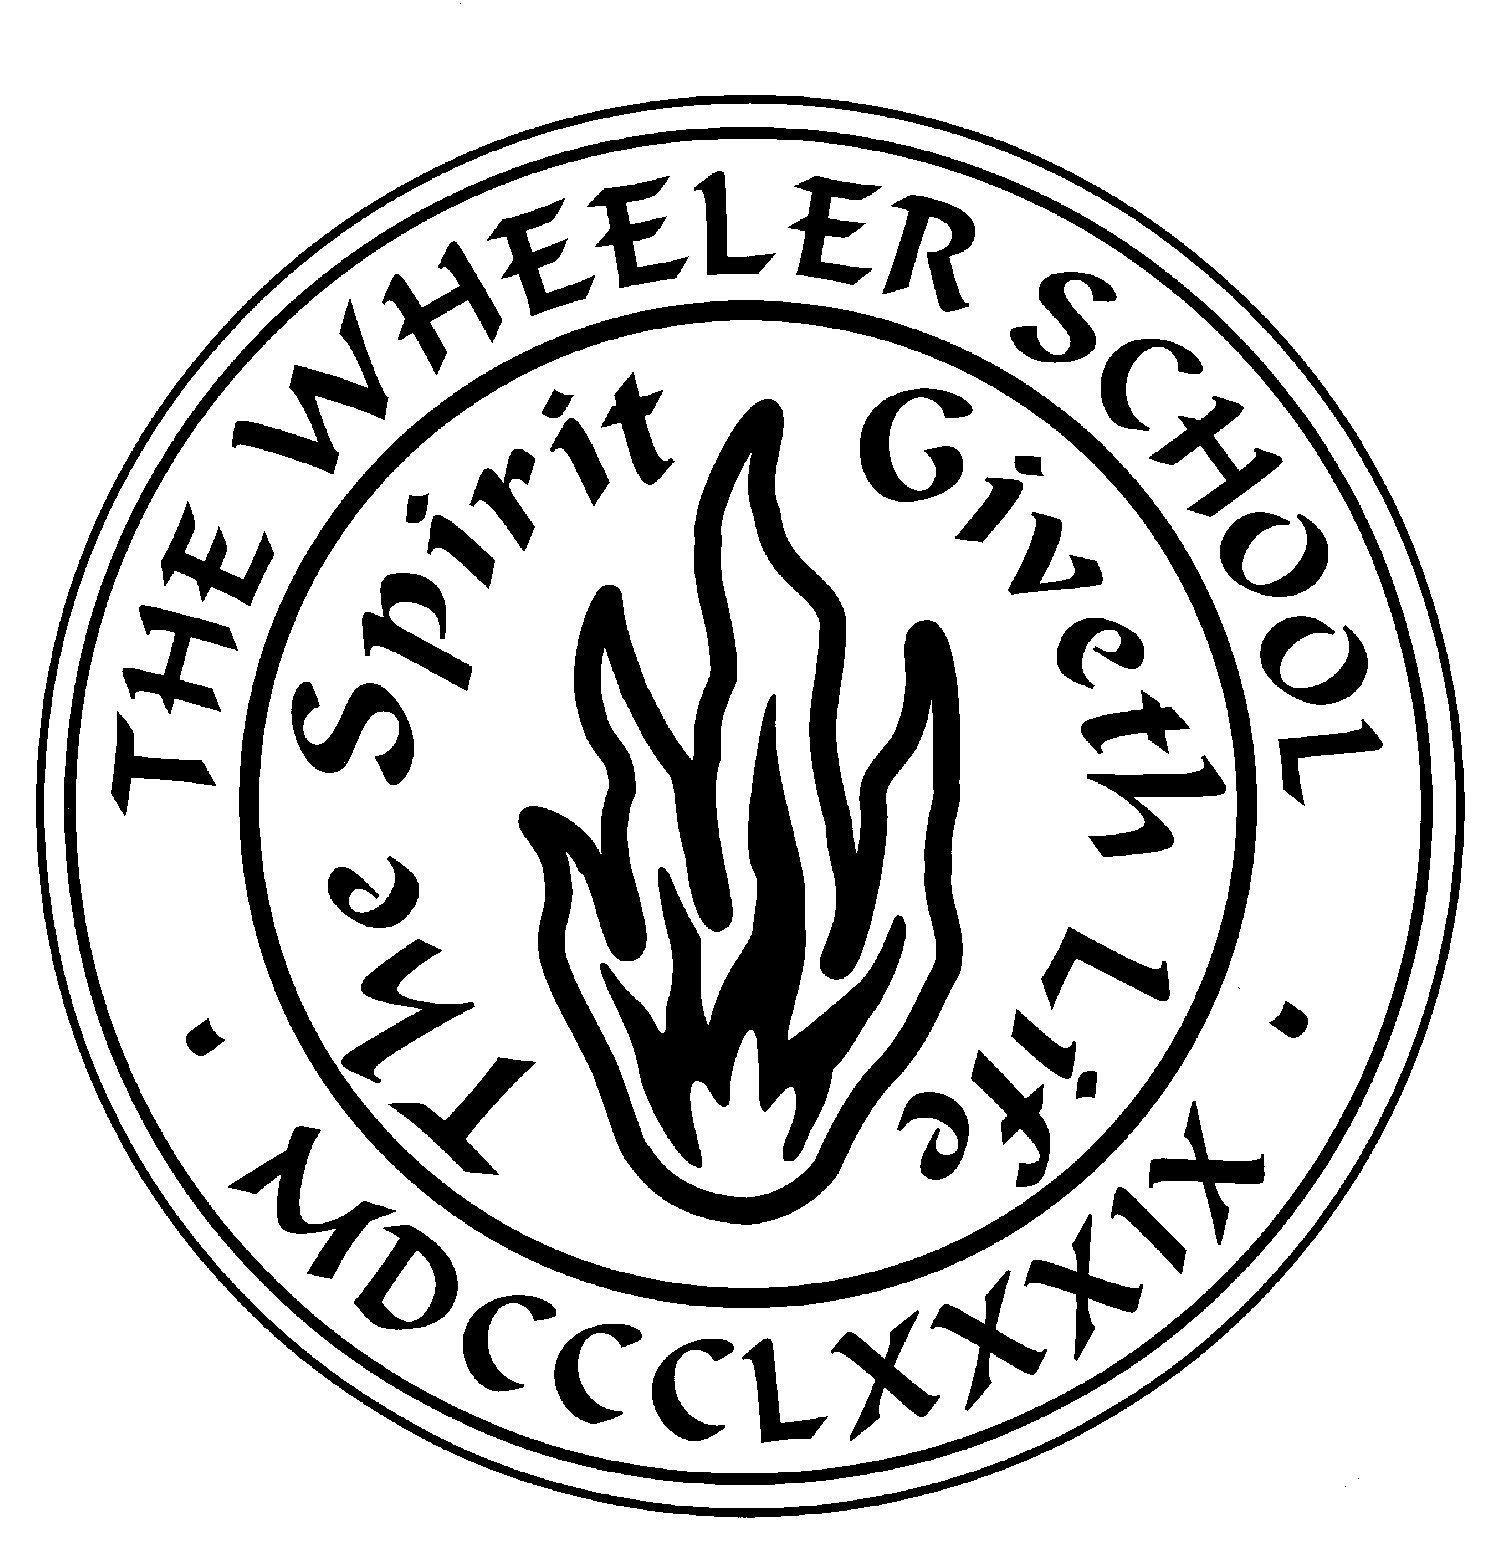 Original School Seal designed by John Howard Benson